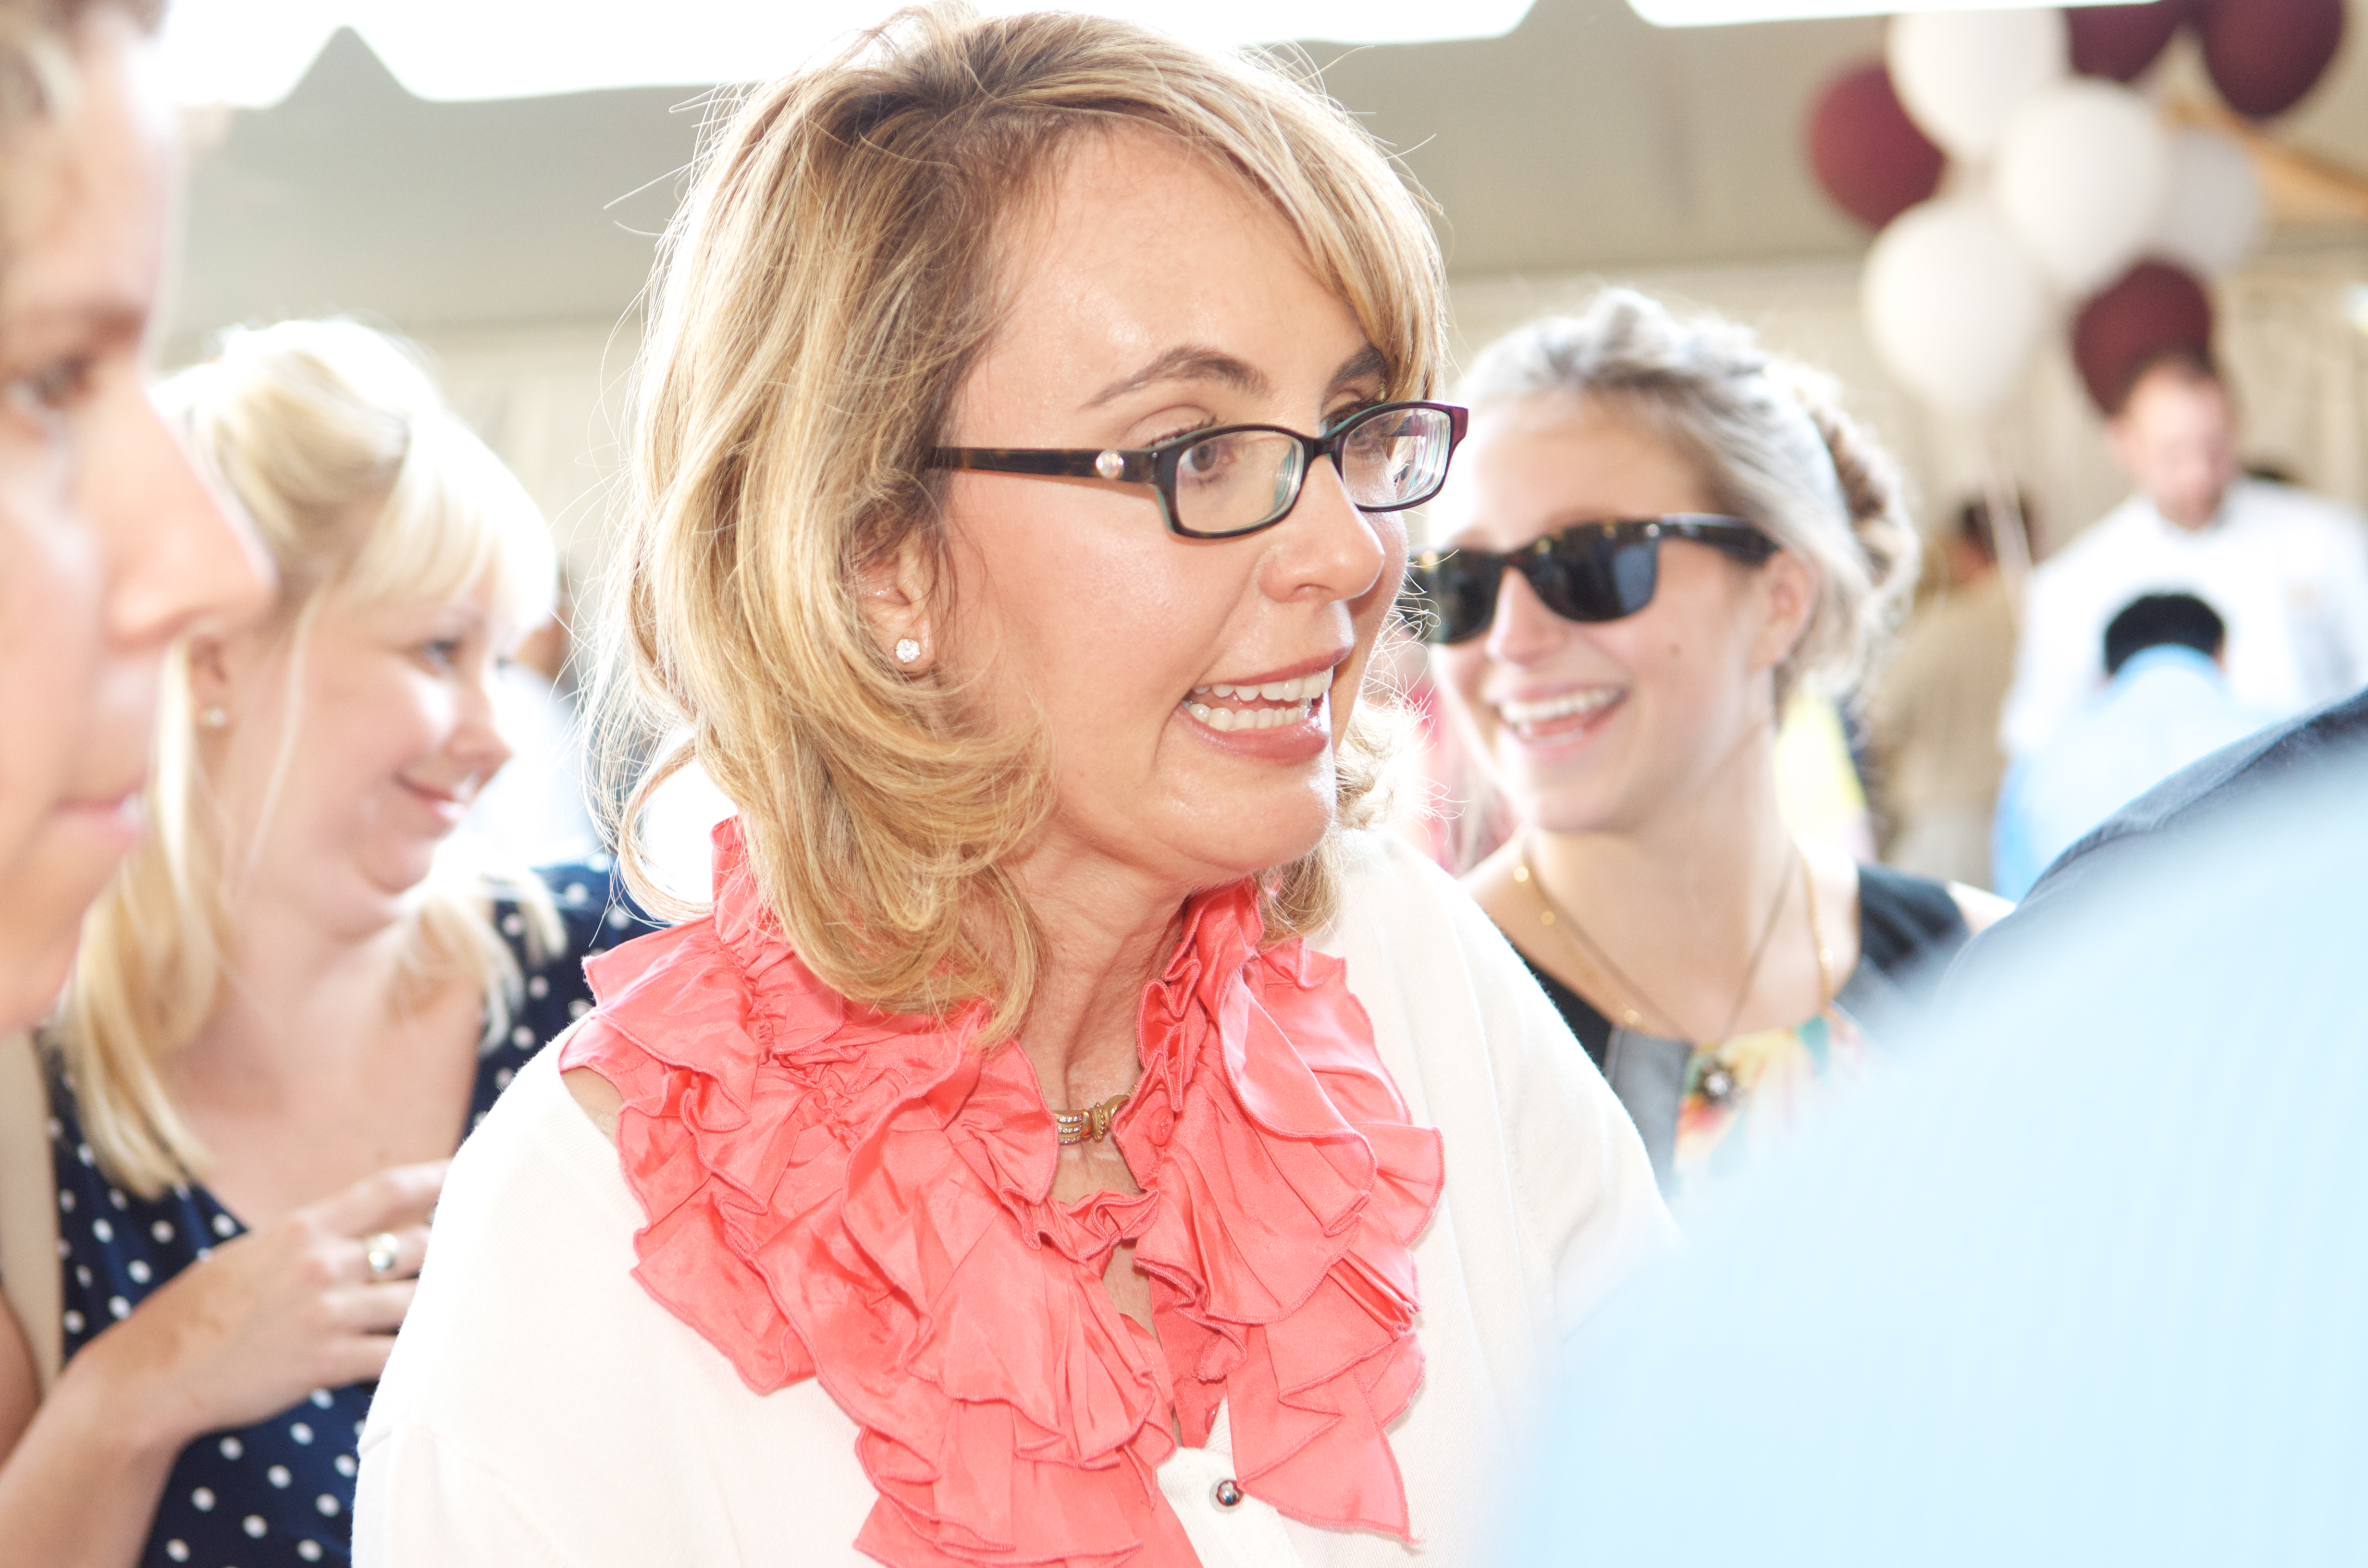 Gabrielle Giffords attends 9th Annual Authors Night at The East Hampton Library on Aug. 10, 2013 in East Hampton, New York.